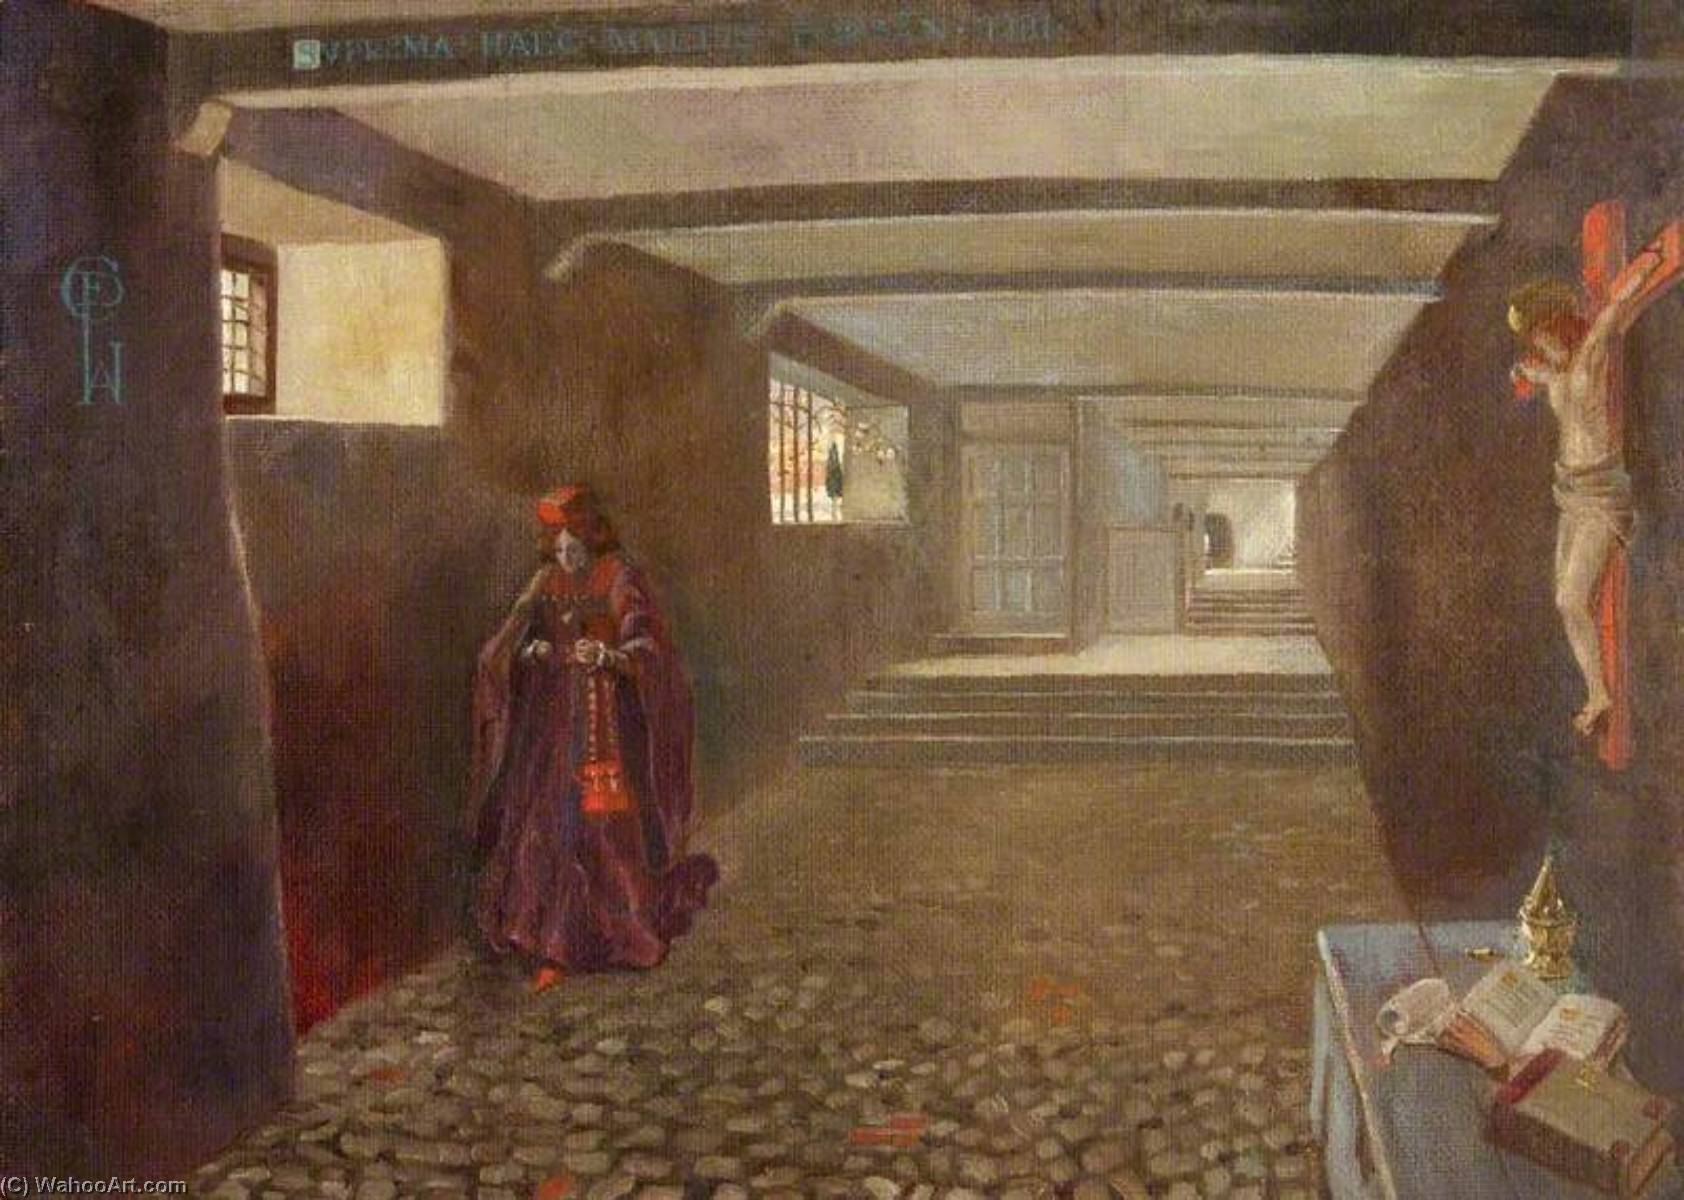 A Stone Corridor, St Kitts, with the Artist in Oriental Dress, 1910 by Charles Paget Wade (1883-1956, United Kingdom) |  | WahooArt.com